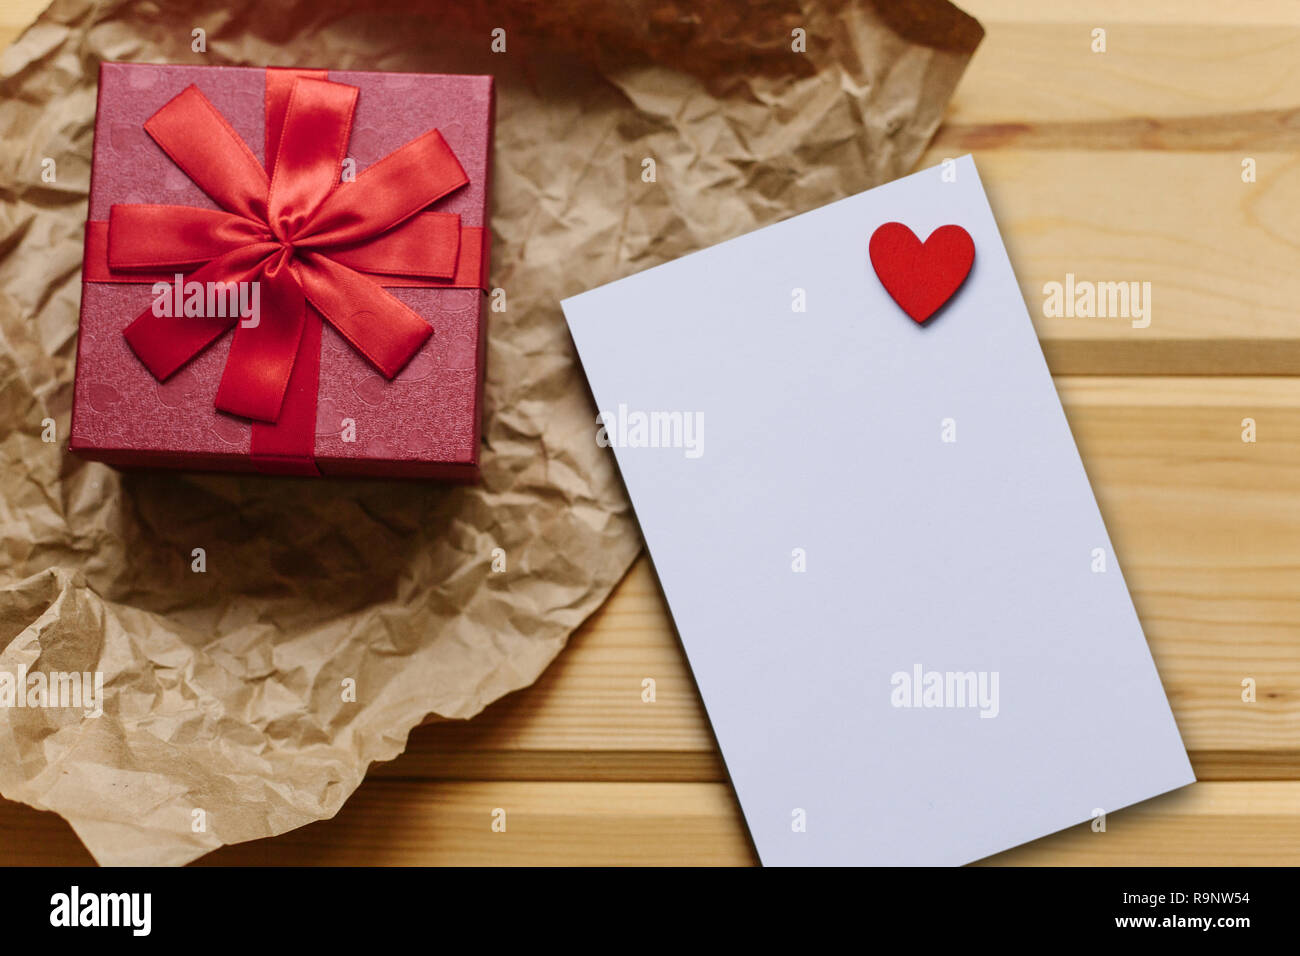 Red box with a gift and next to a white blank sheet for text with a heart on a wooden surface. Festive concept for Valentine's Day or Women's Day or Mother's Day. Stock Photo